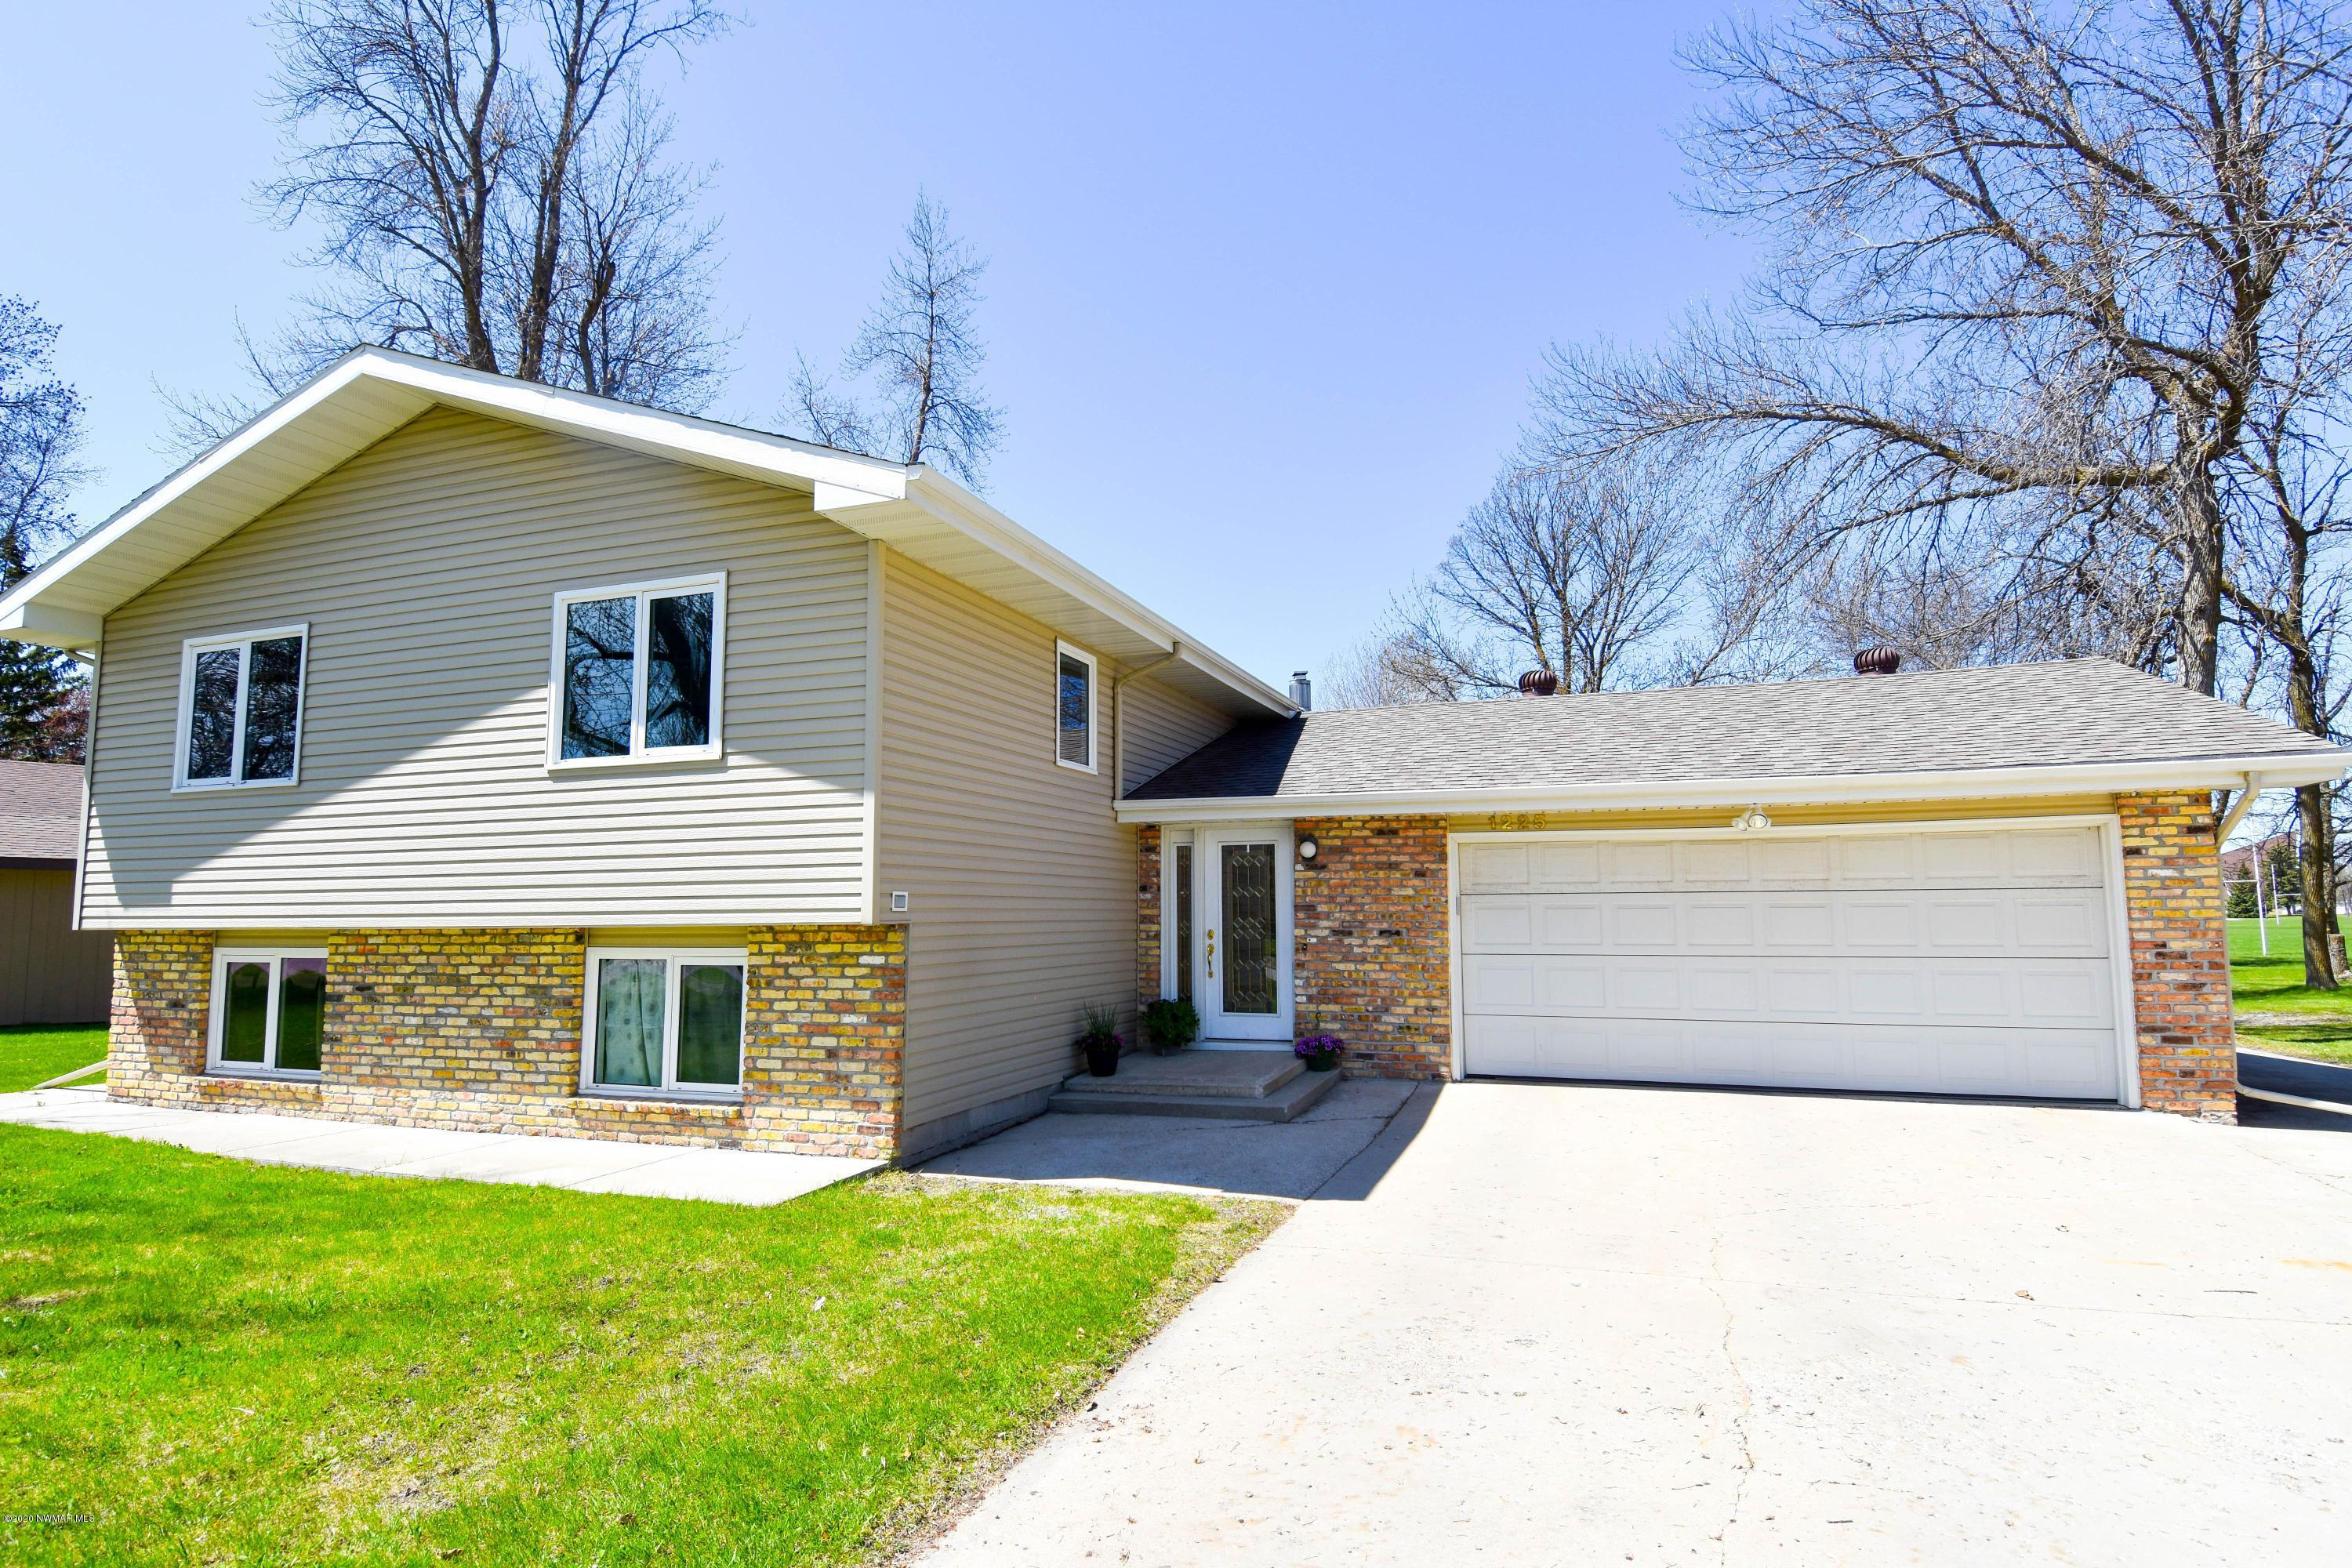 1225 Edgewood Property Photo - Thief River Falls, MN real estate listing